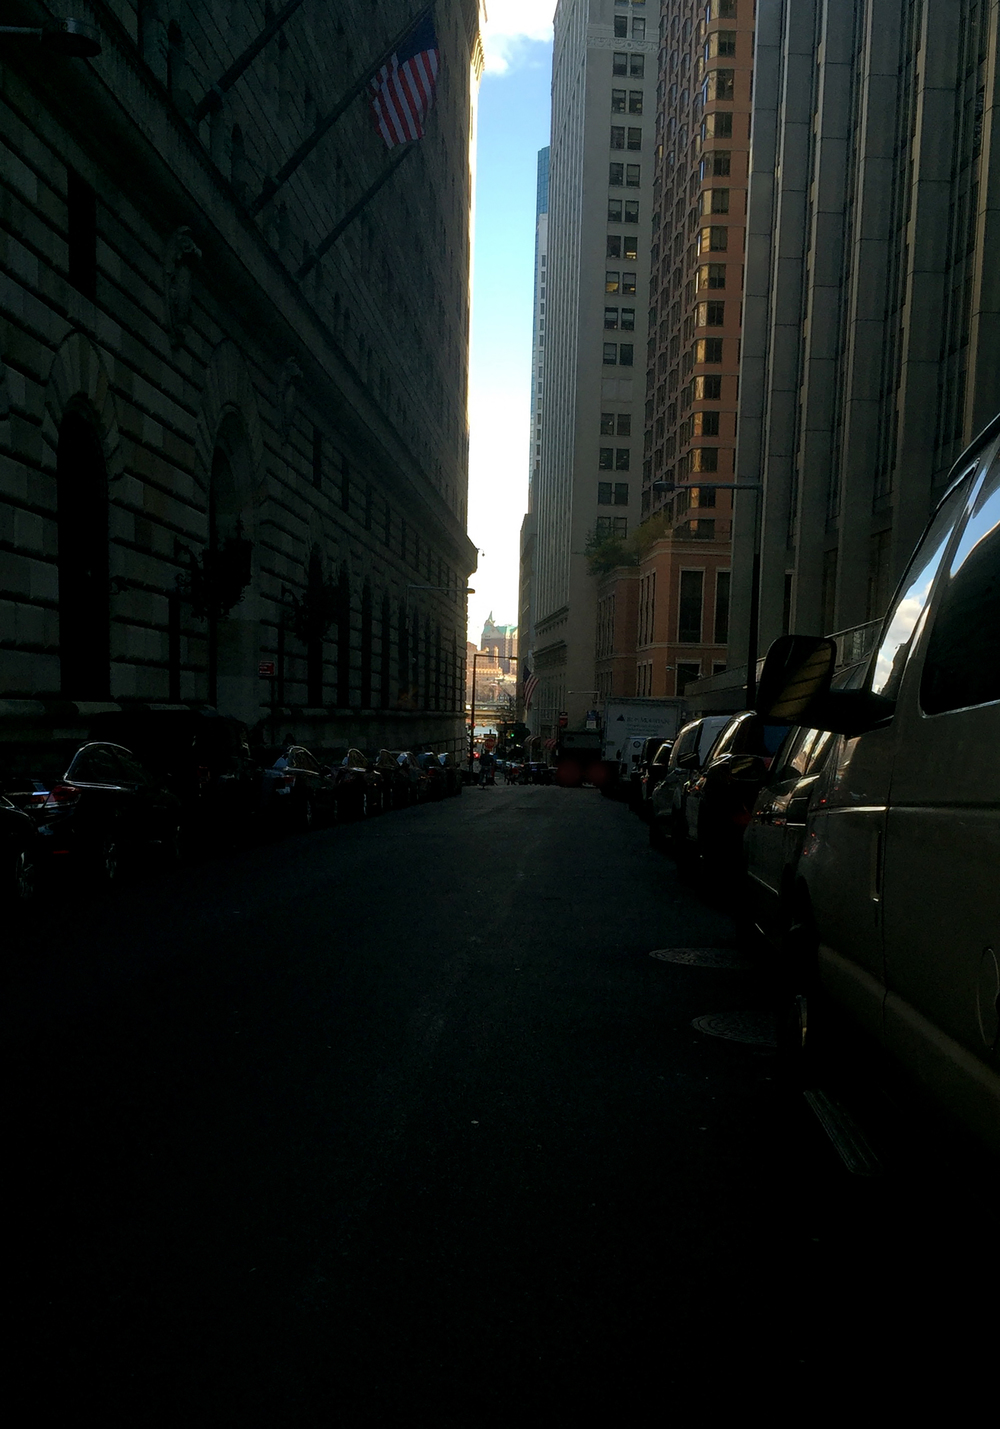 Looking east down Liberty Street on Nassau Street, draped in shade from the skyscrapers, with the sun showing on the water in the distance - November 23, 2015